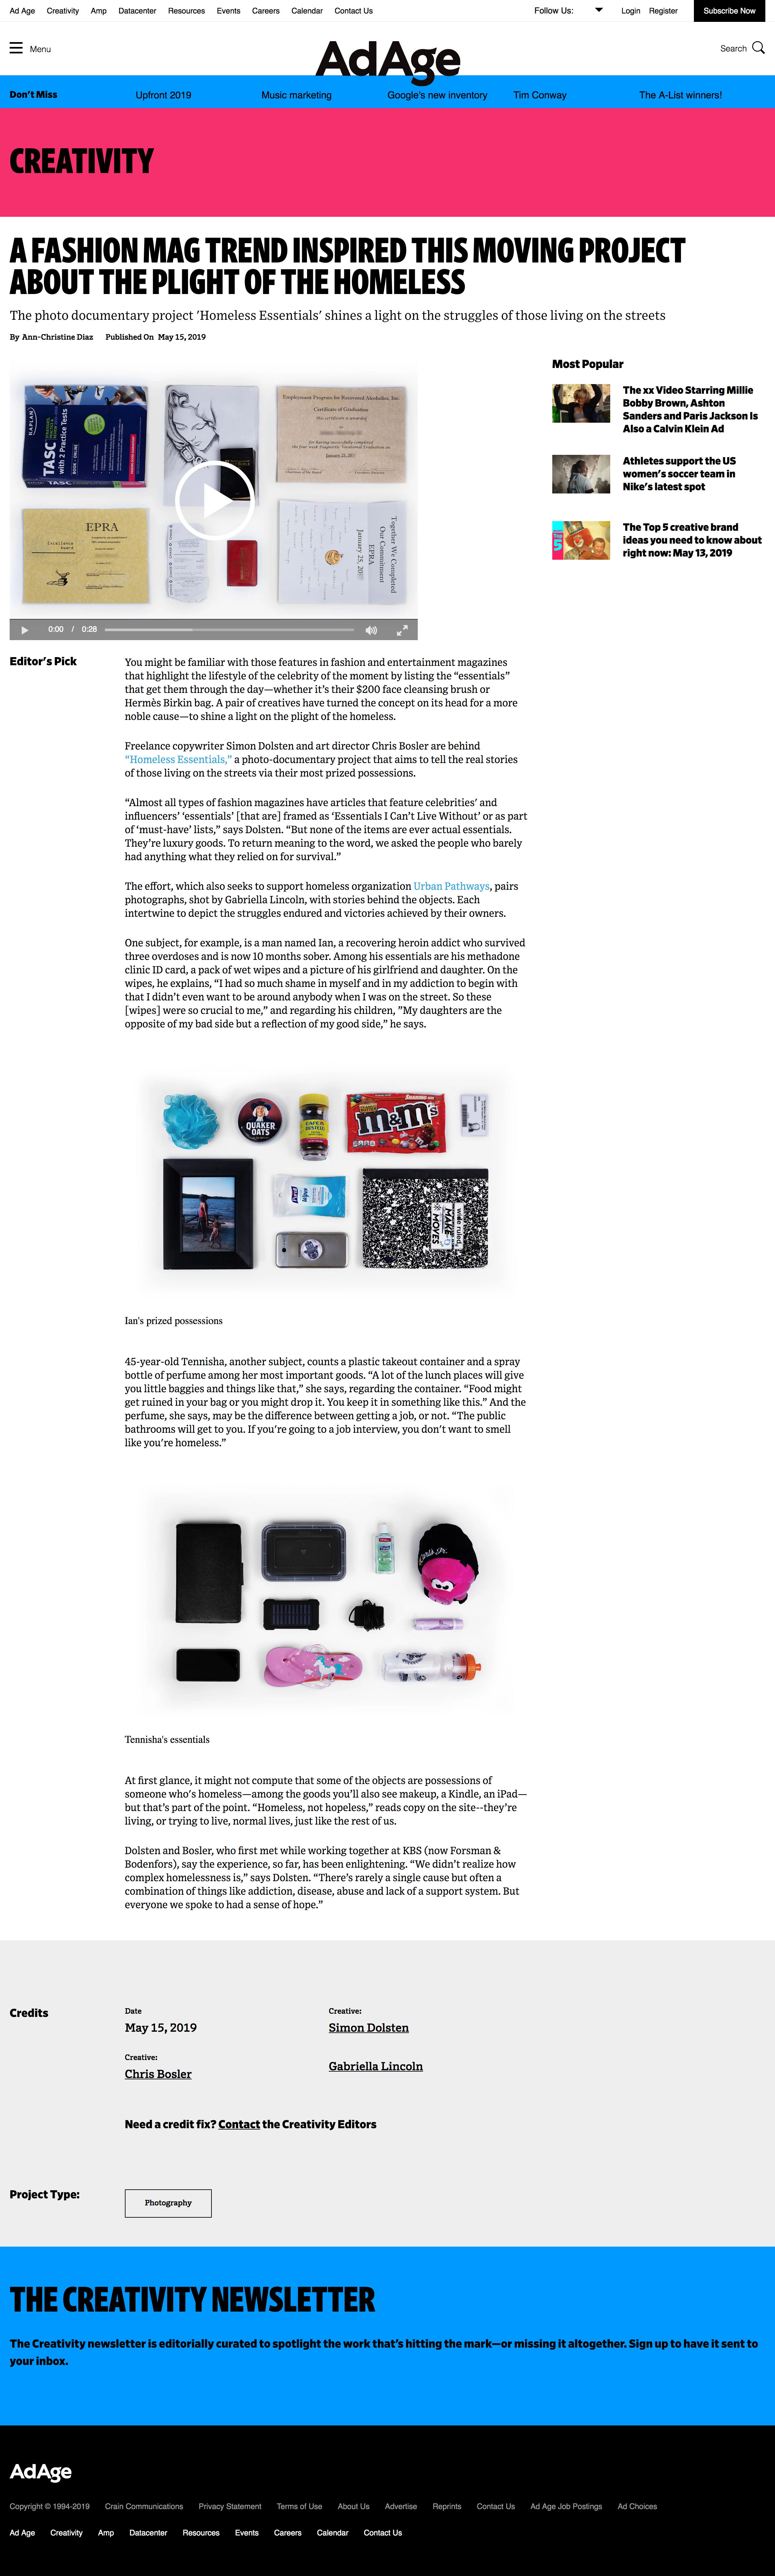 screencapture-adage-creativity-work-simon-dolsten-and-chris-bosler-homeless-essentials-2171881-2019-05-15-19_08_16.png